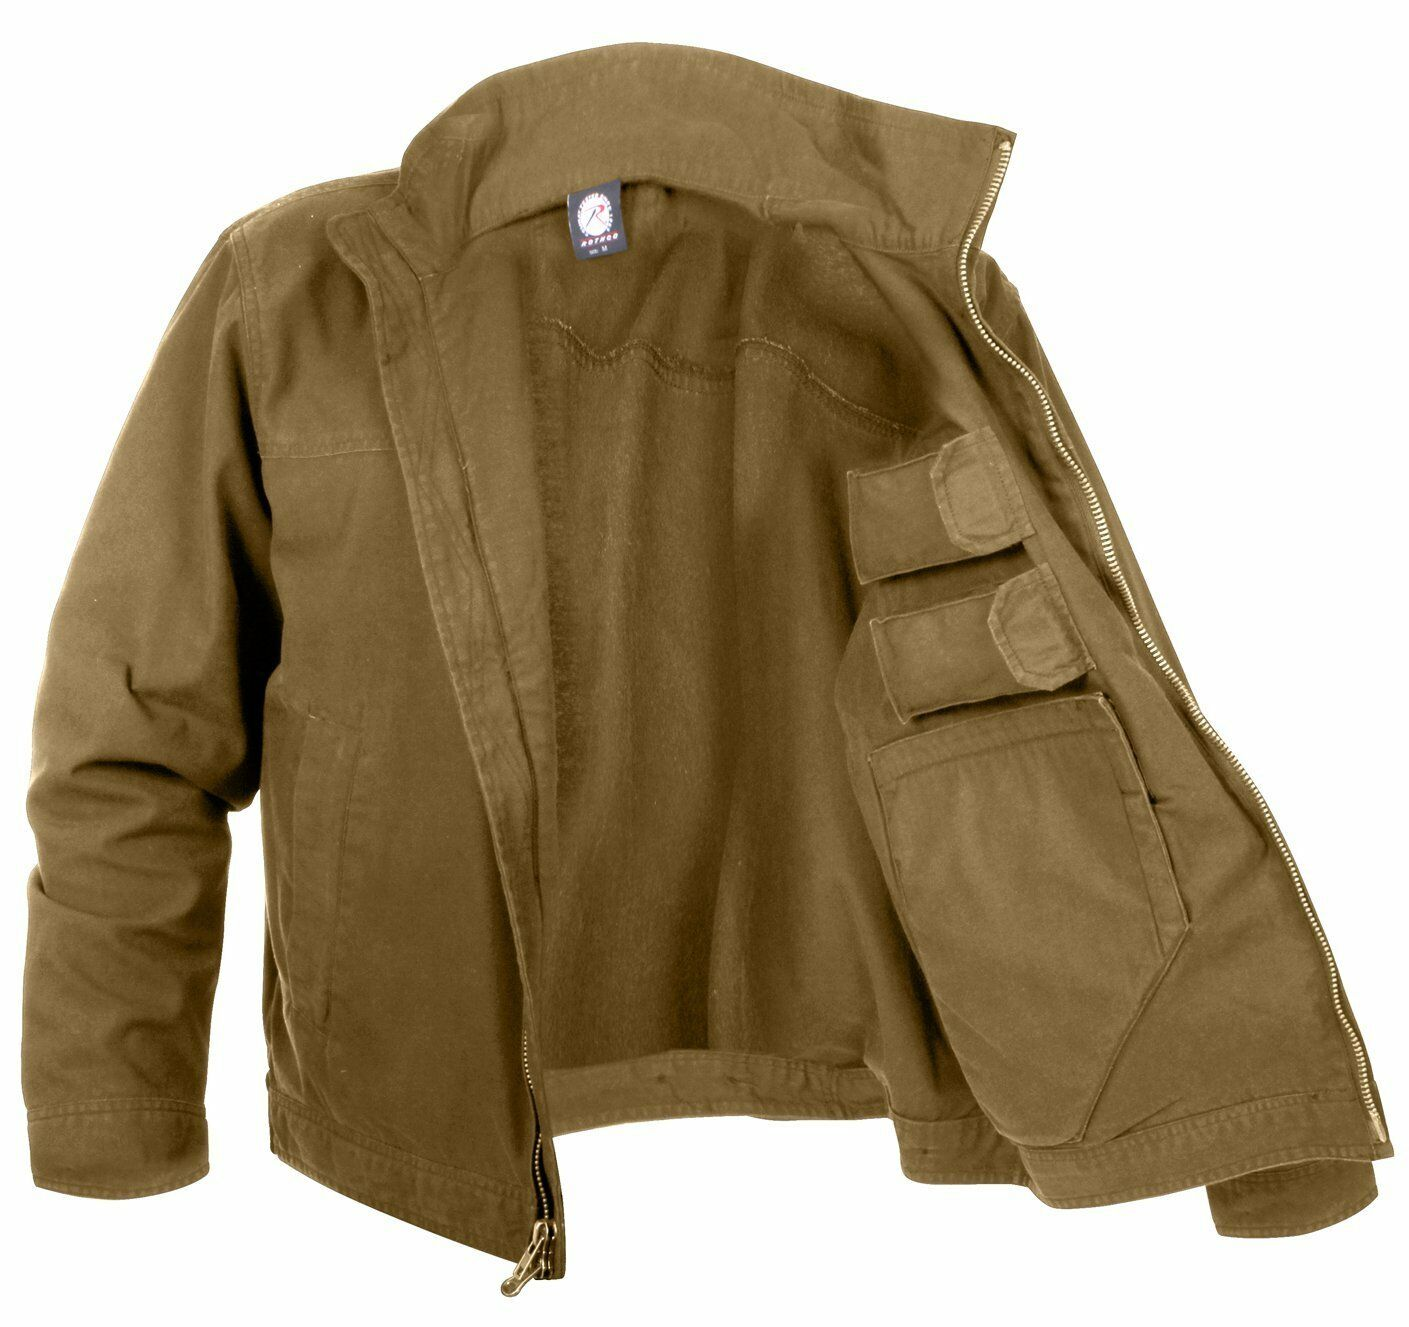 Rothco 3801 Lightweight Concealed Carry Jacket - Coyote braun